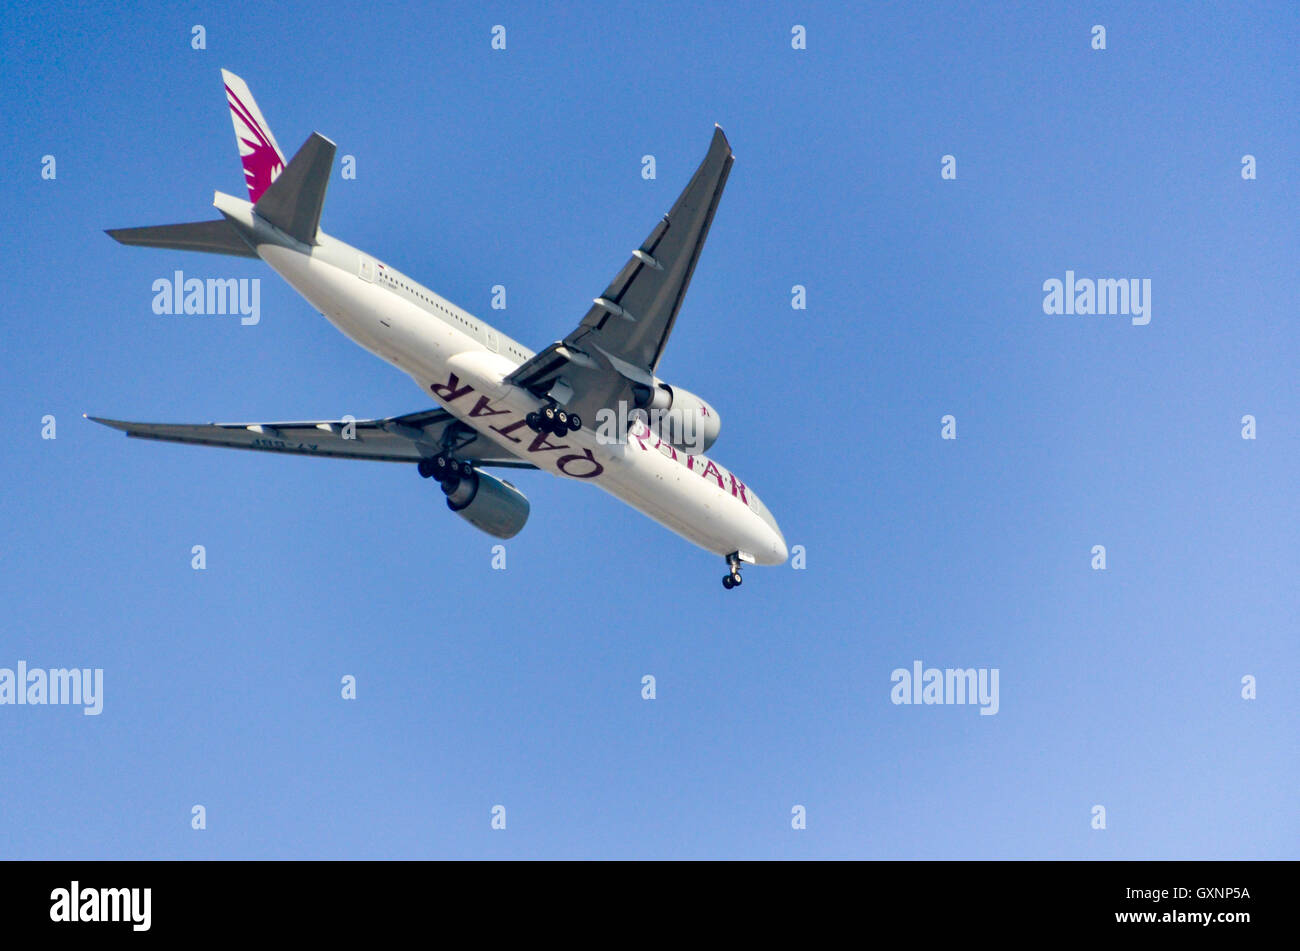 Boeing aircraft of Qatar Airways (Boeing 777-2DZ(LR)) in the blue sky of Doha - Stock Image